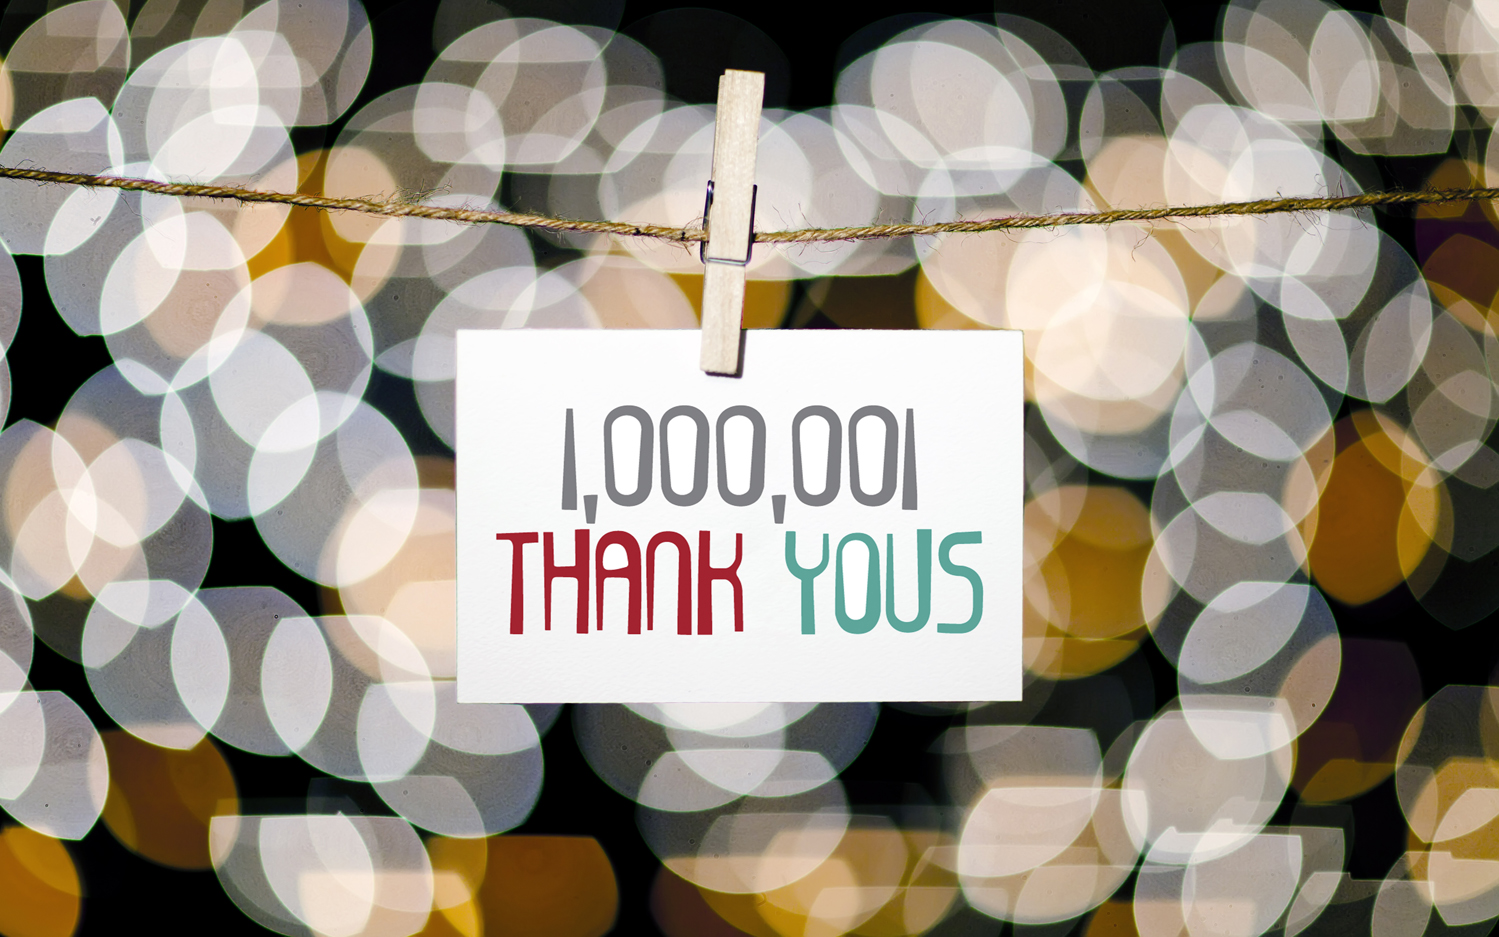 1000001_tHANK_yOUS_LiGHTS_bG-eTSY